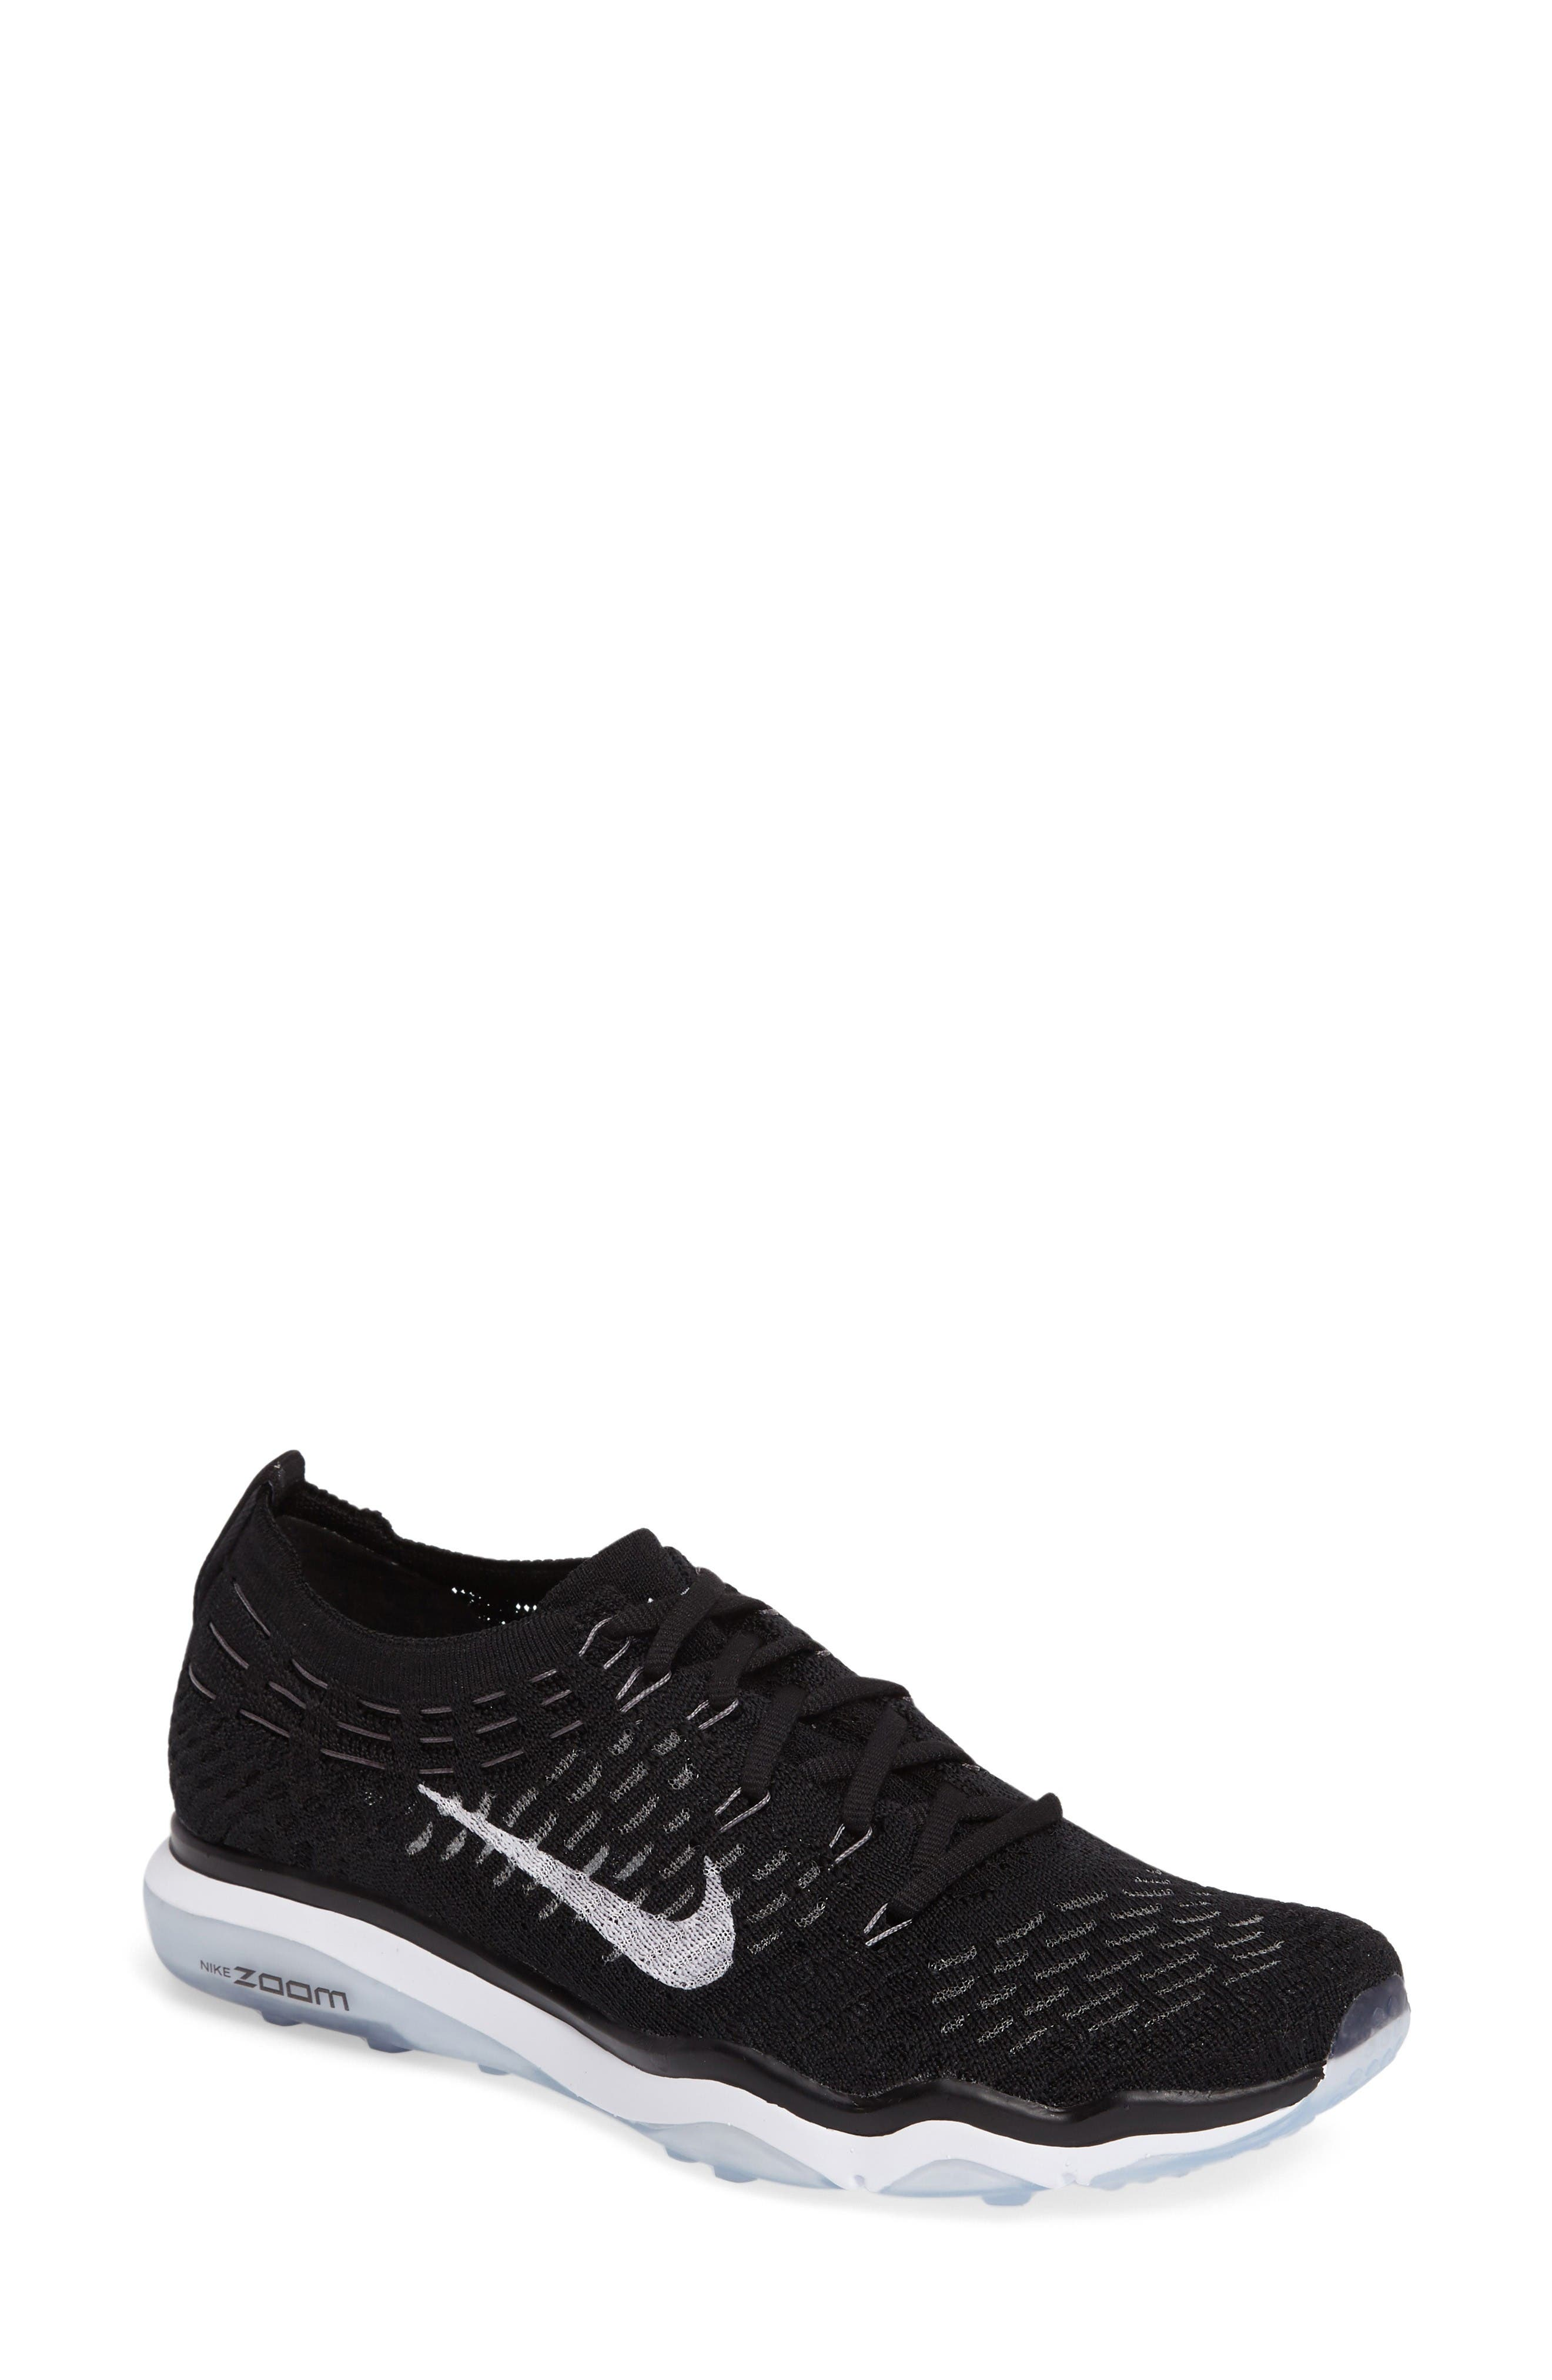 Alternate Image 1 Selected - Nike Air Zoom Fearless Flyknit Training Shoe (Women)